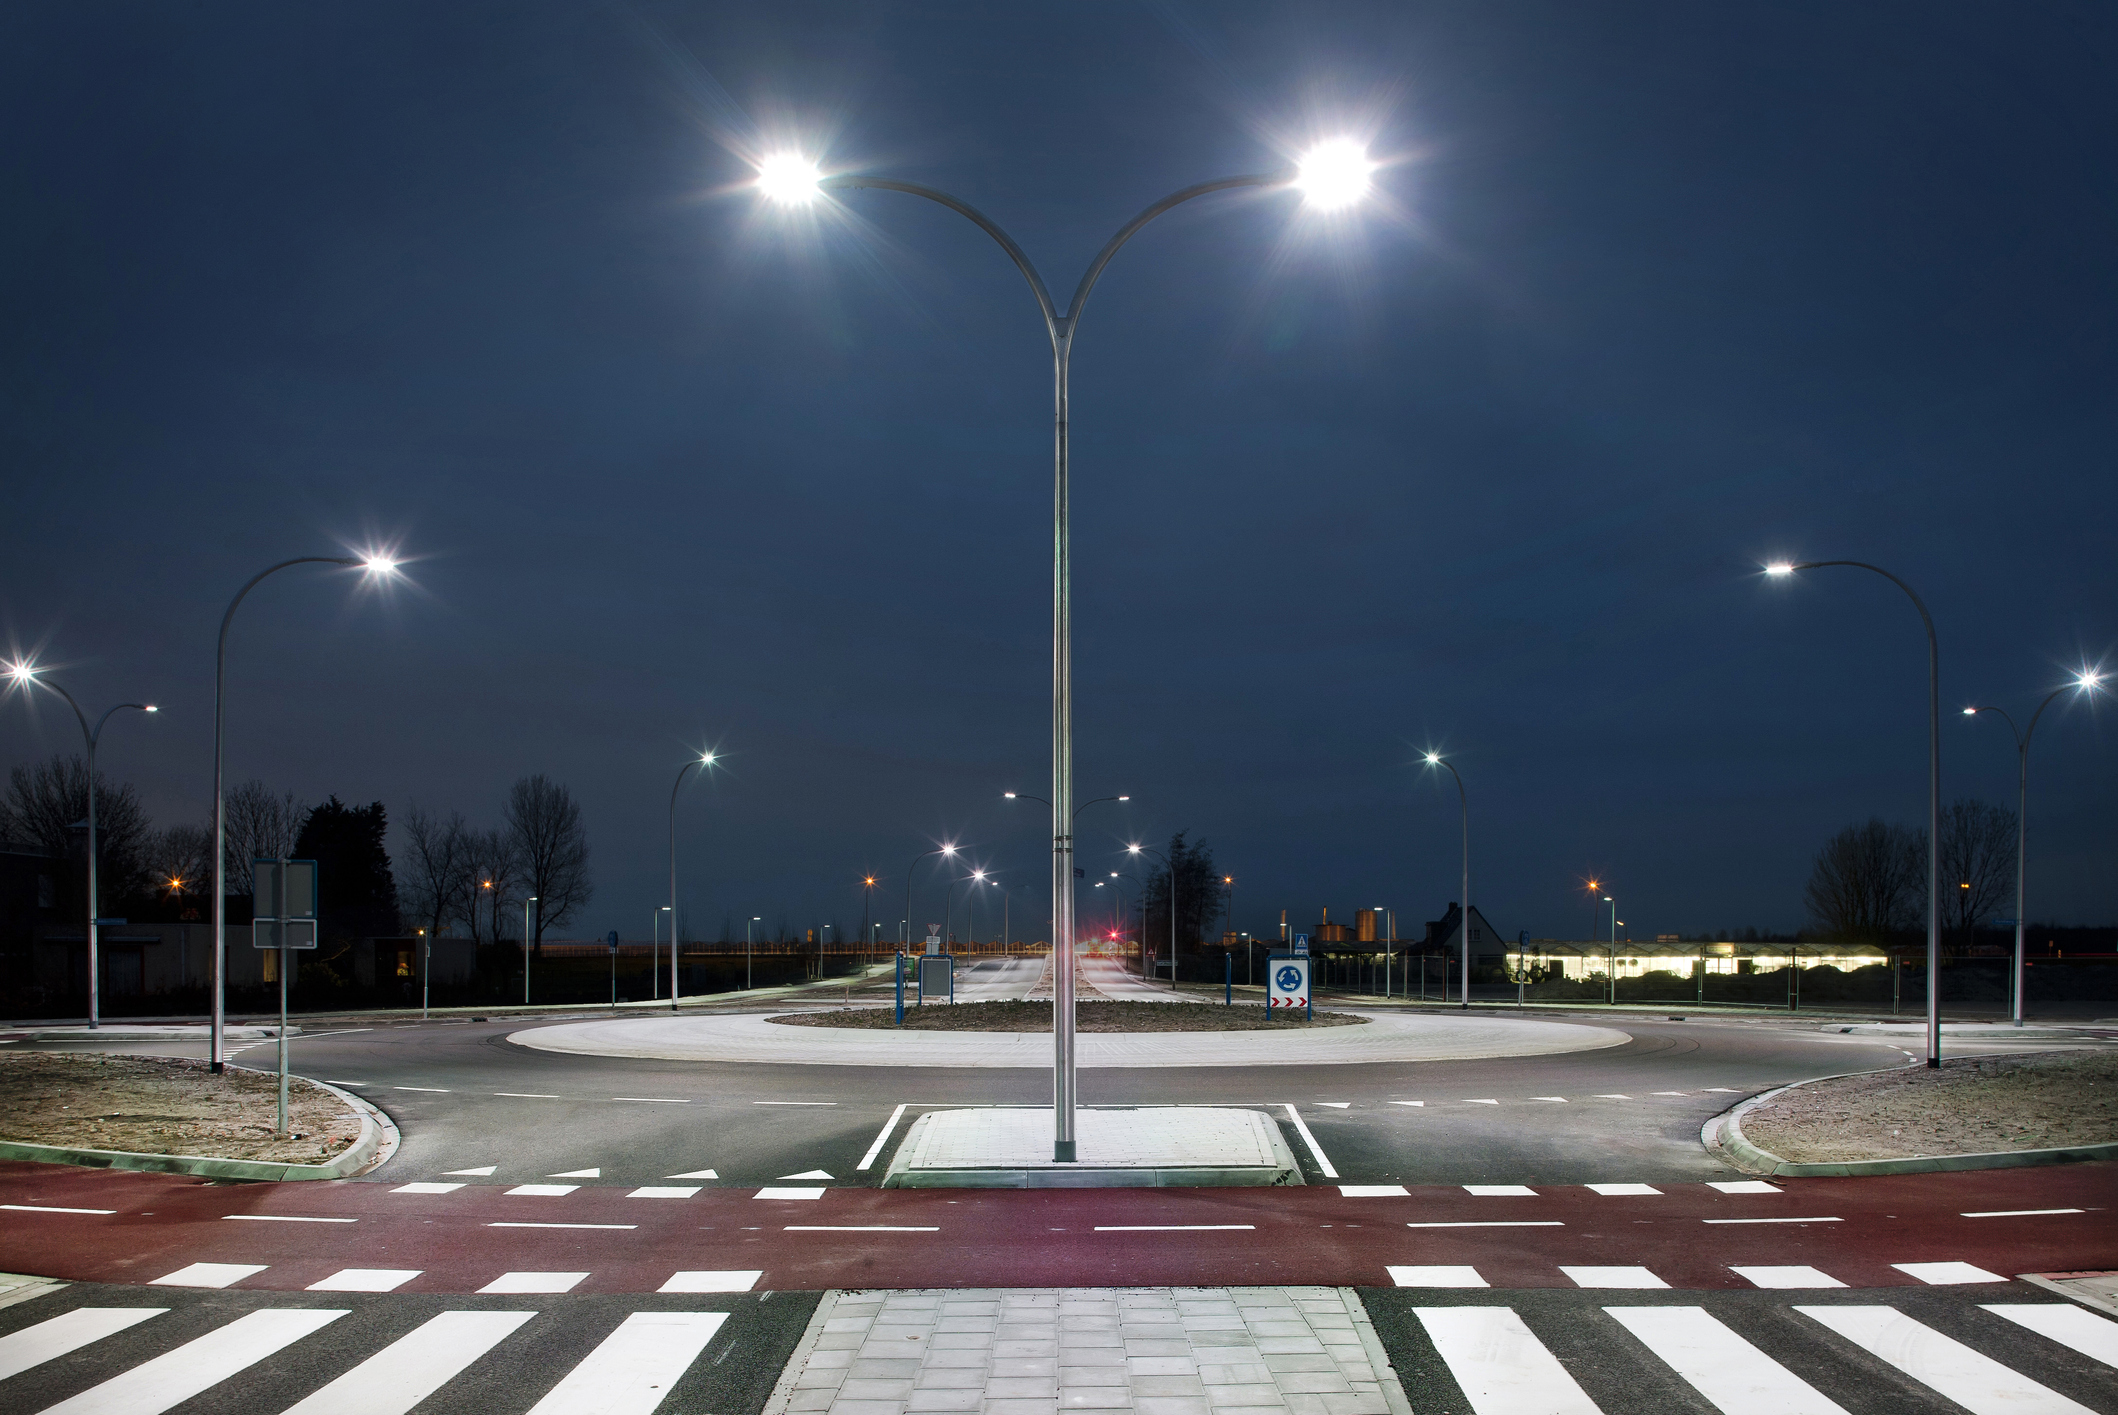 LED (Light Emitting Diodes) lights are durable, resilient, and efficient, making them a superior security choice when compared to solar lighting.